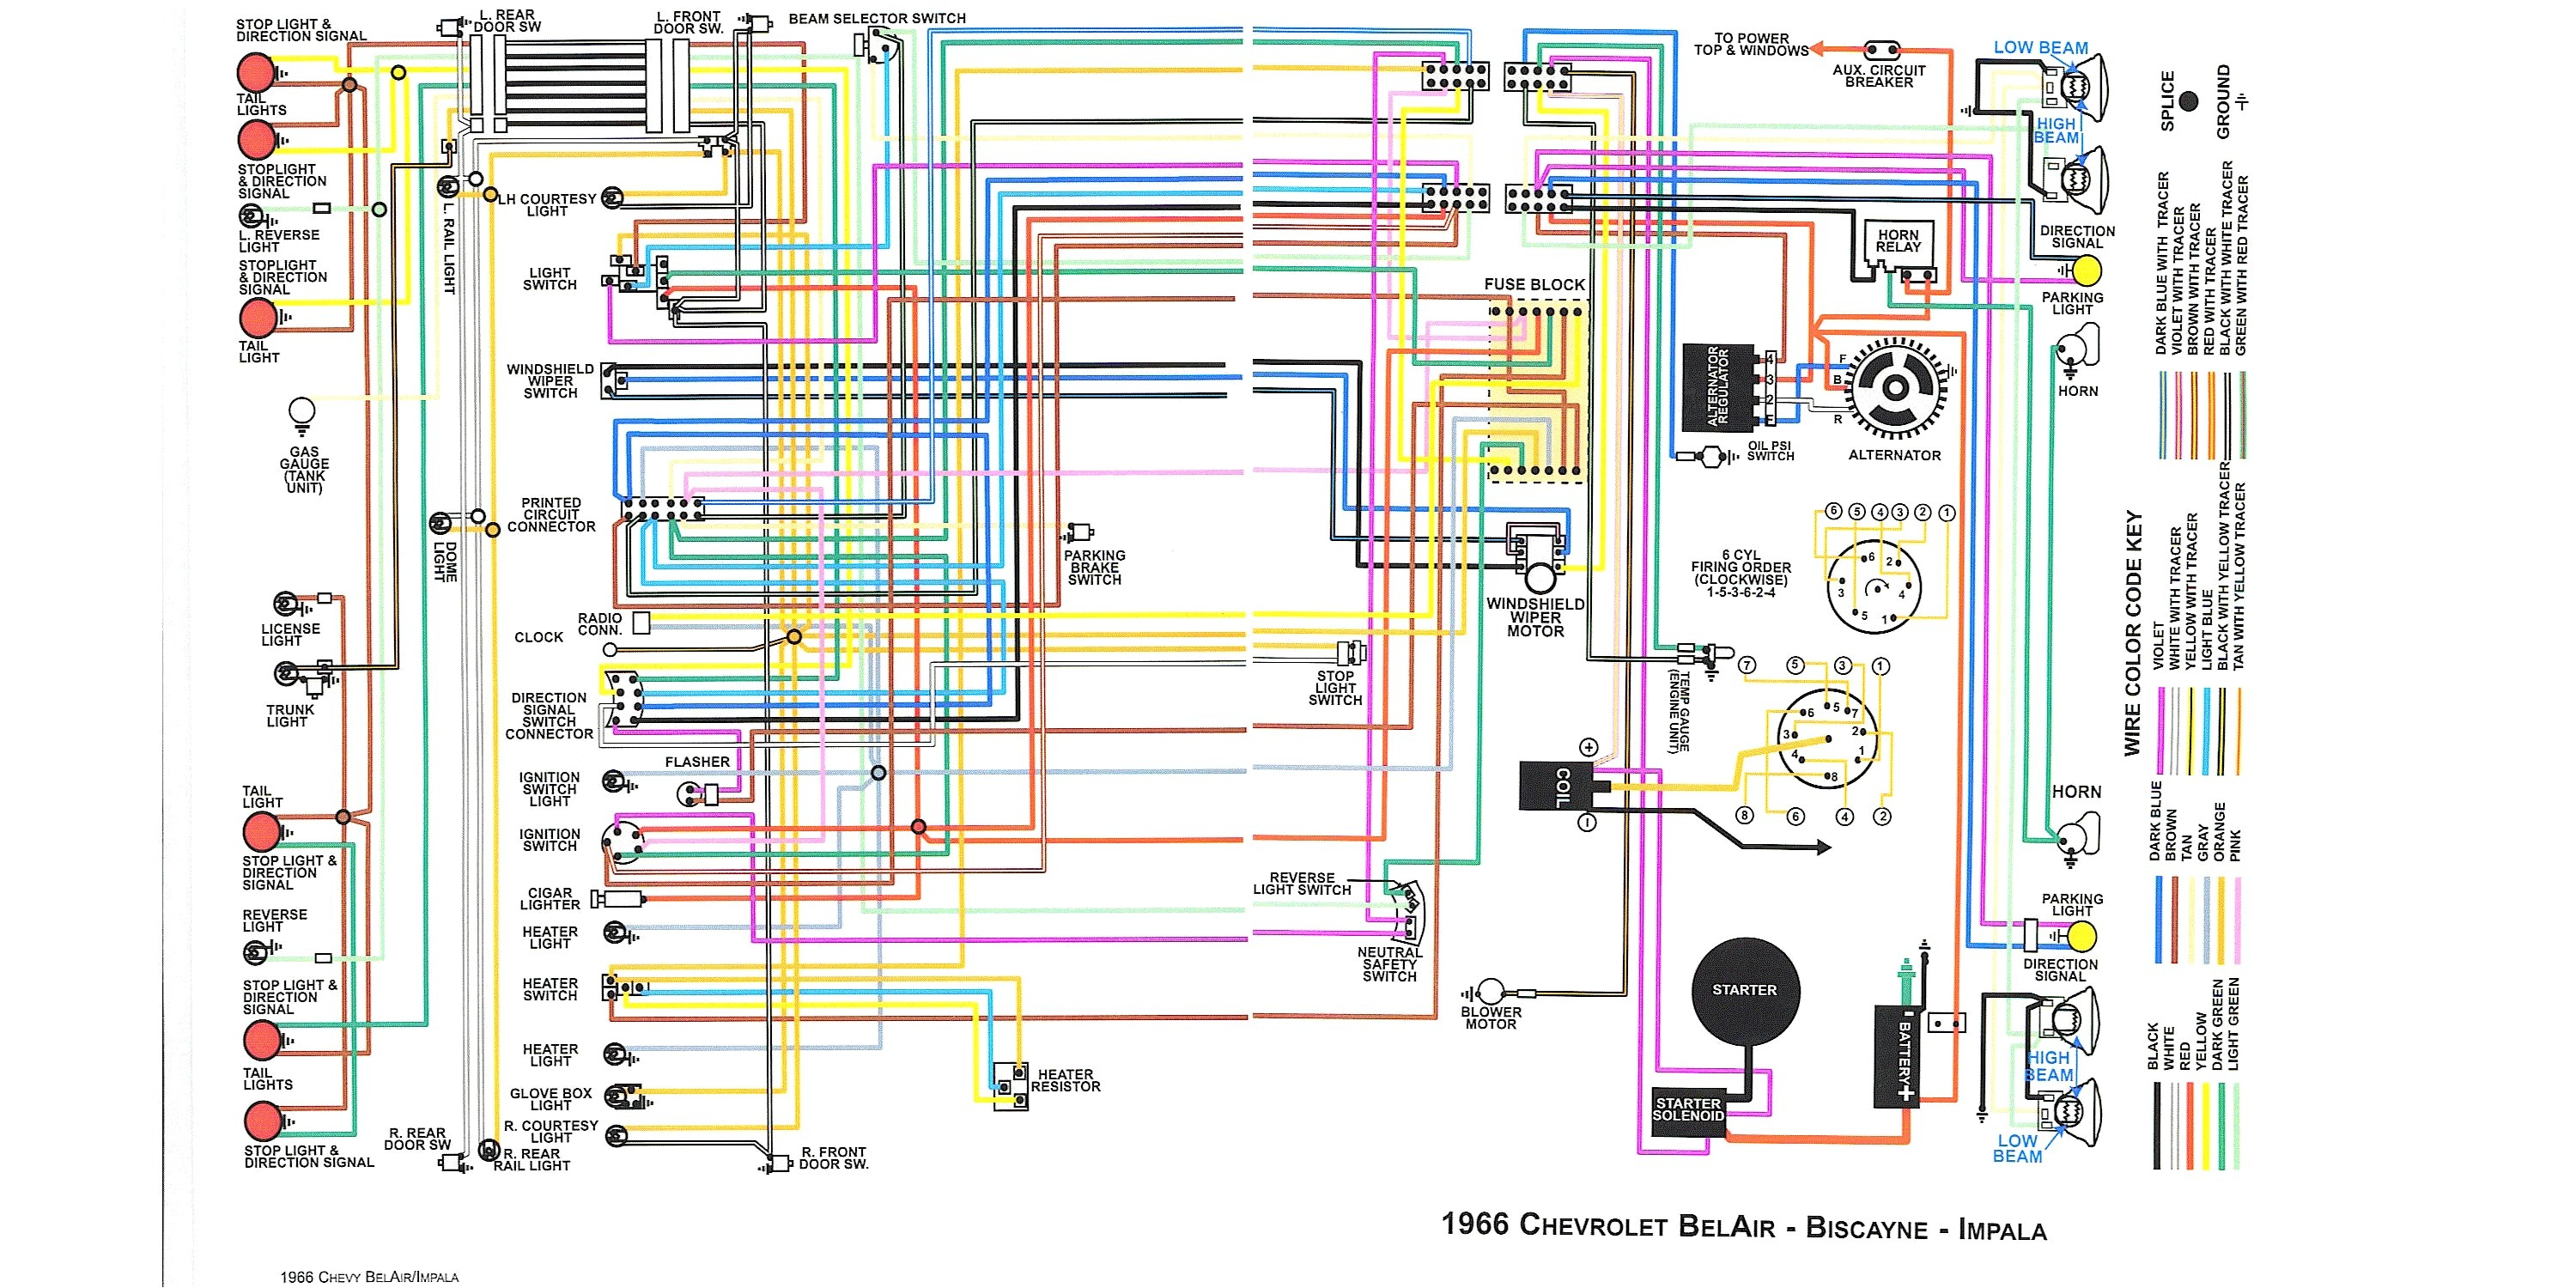 1970 chevy alternator wiring diagram mo 4135  2wire chevy alternator wiring diagram also 2wire  2wire chevy alternator wiring diagram